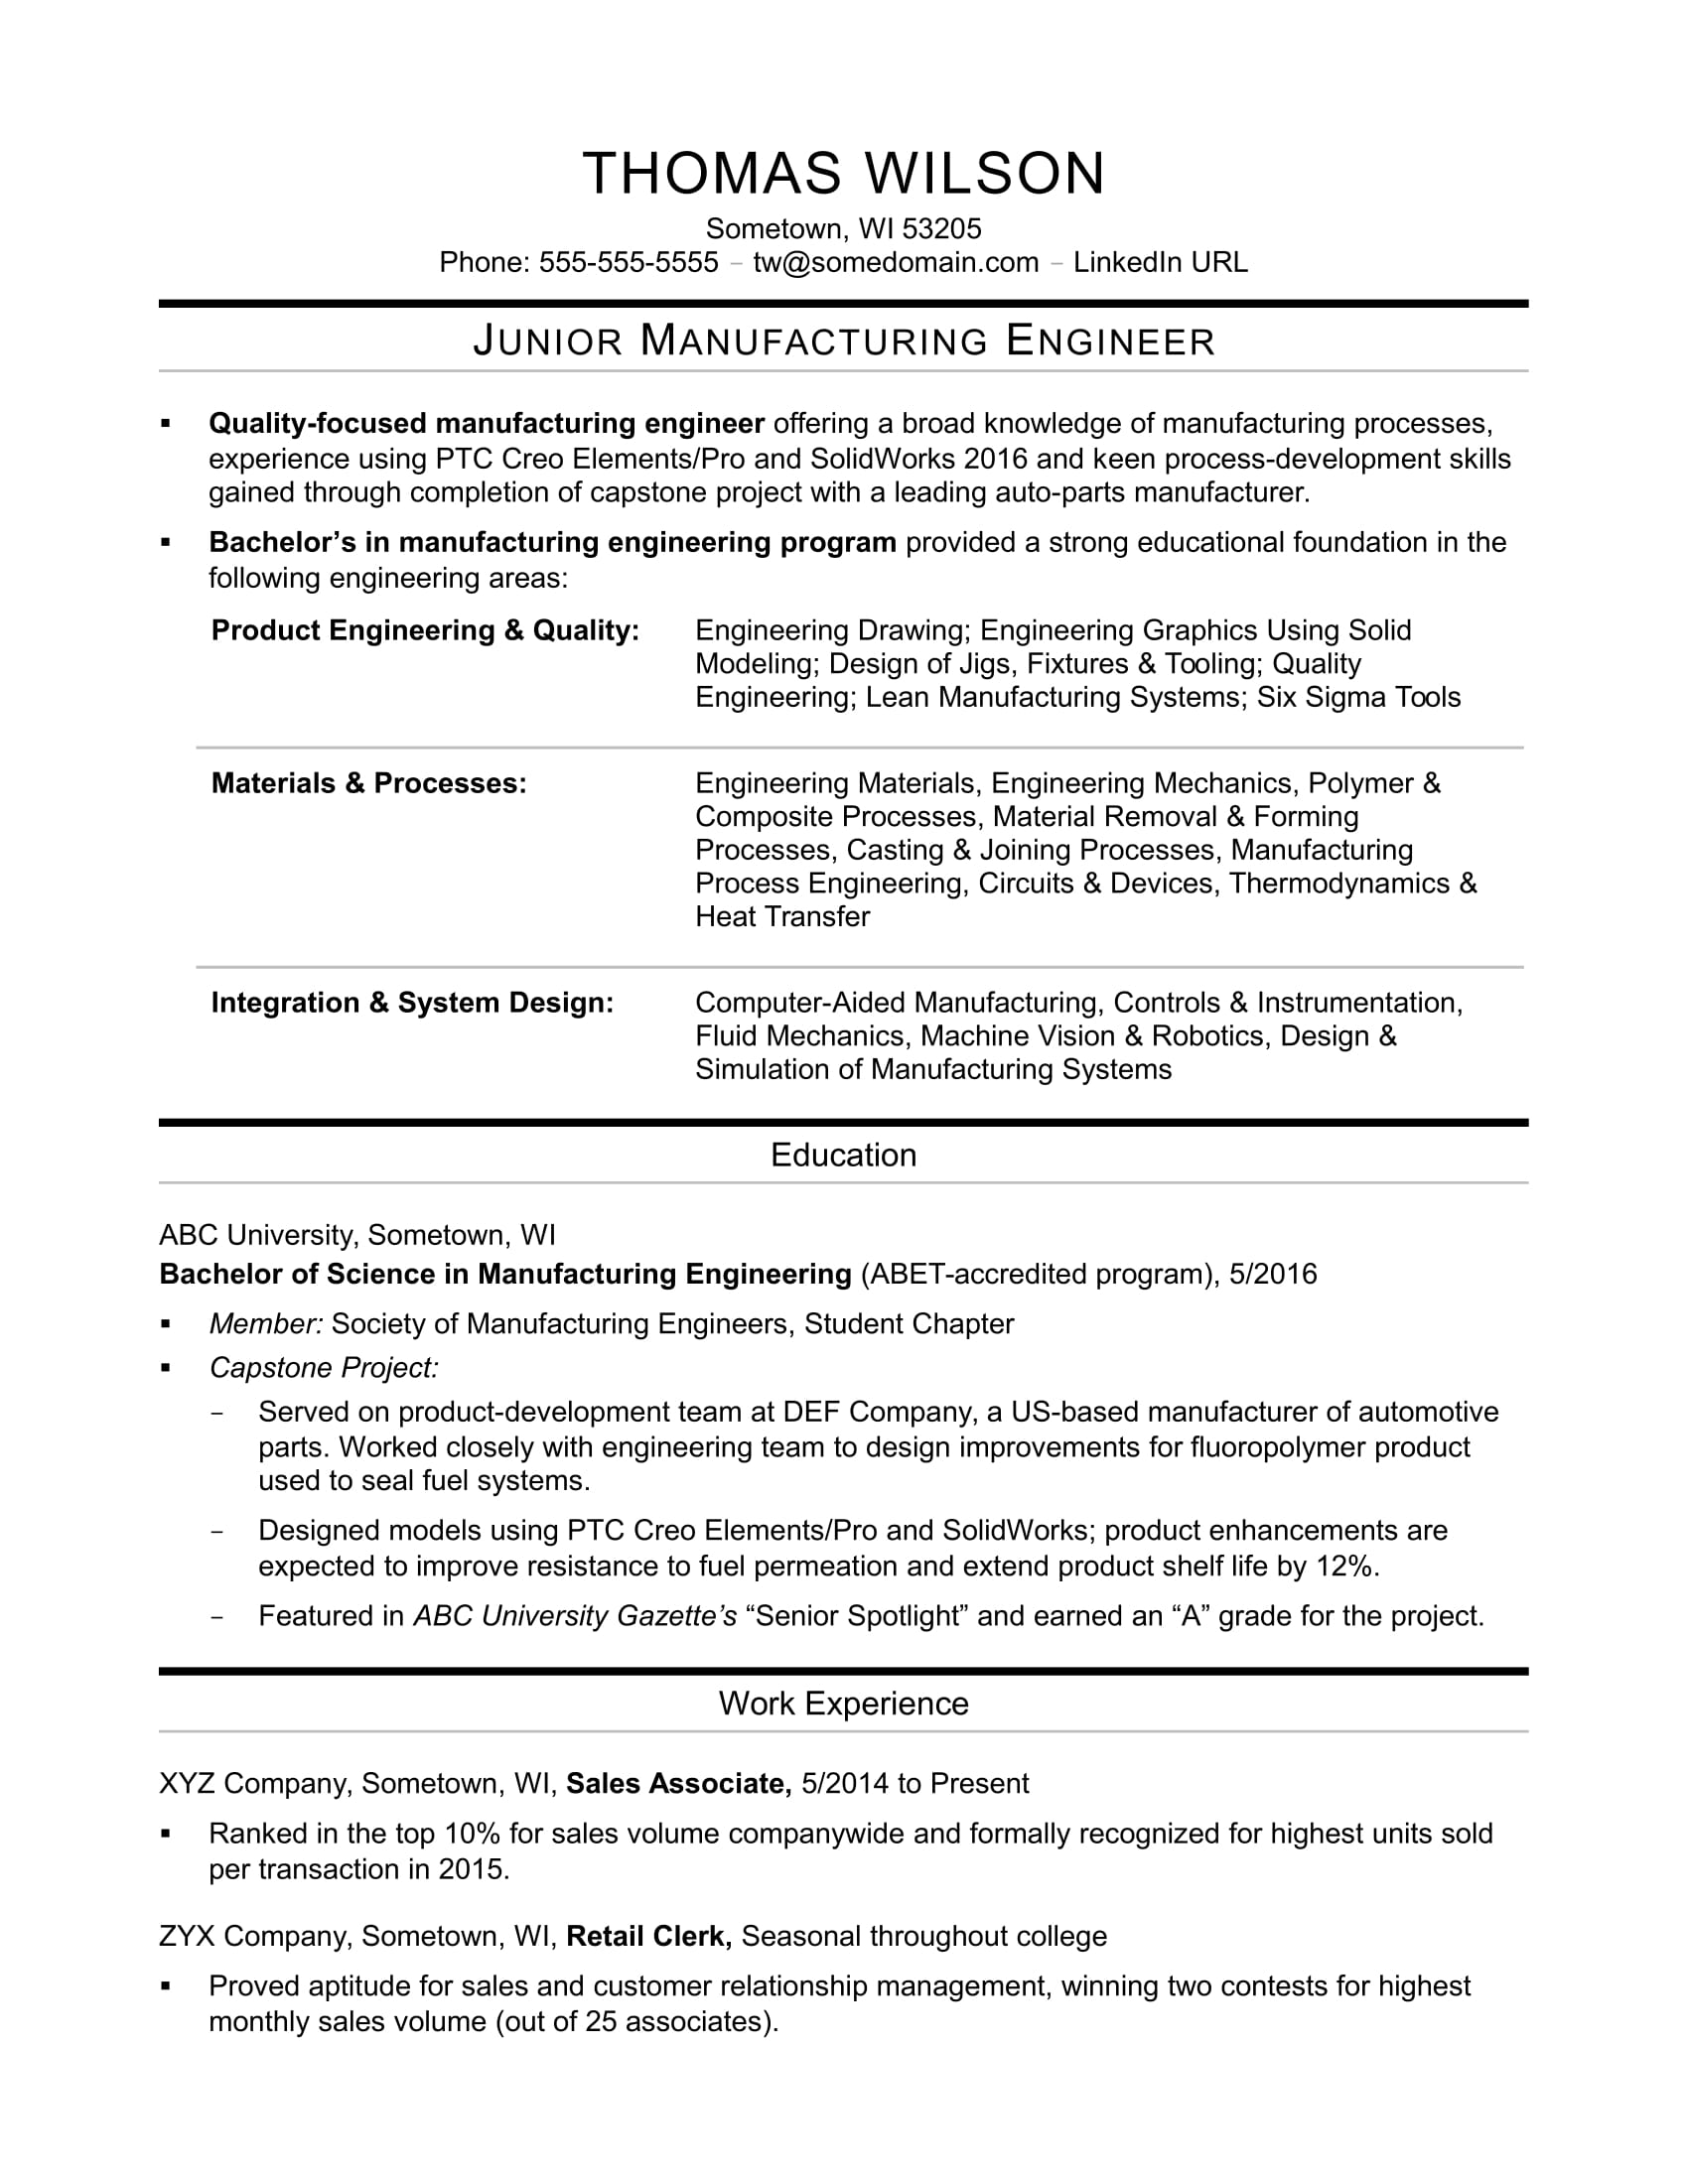 Sample Resume for an EntryLevel Manufacturing Engineer